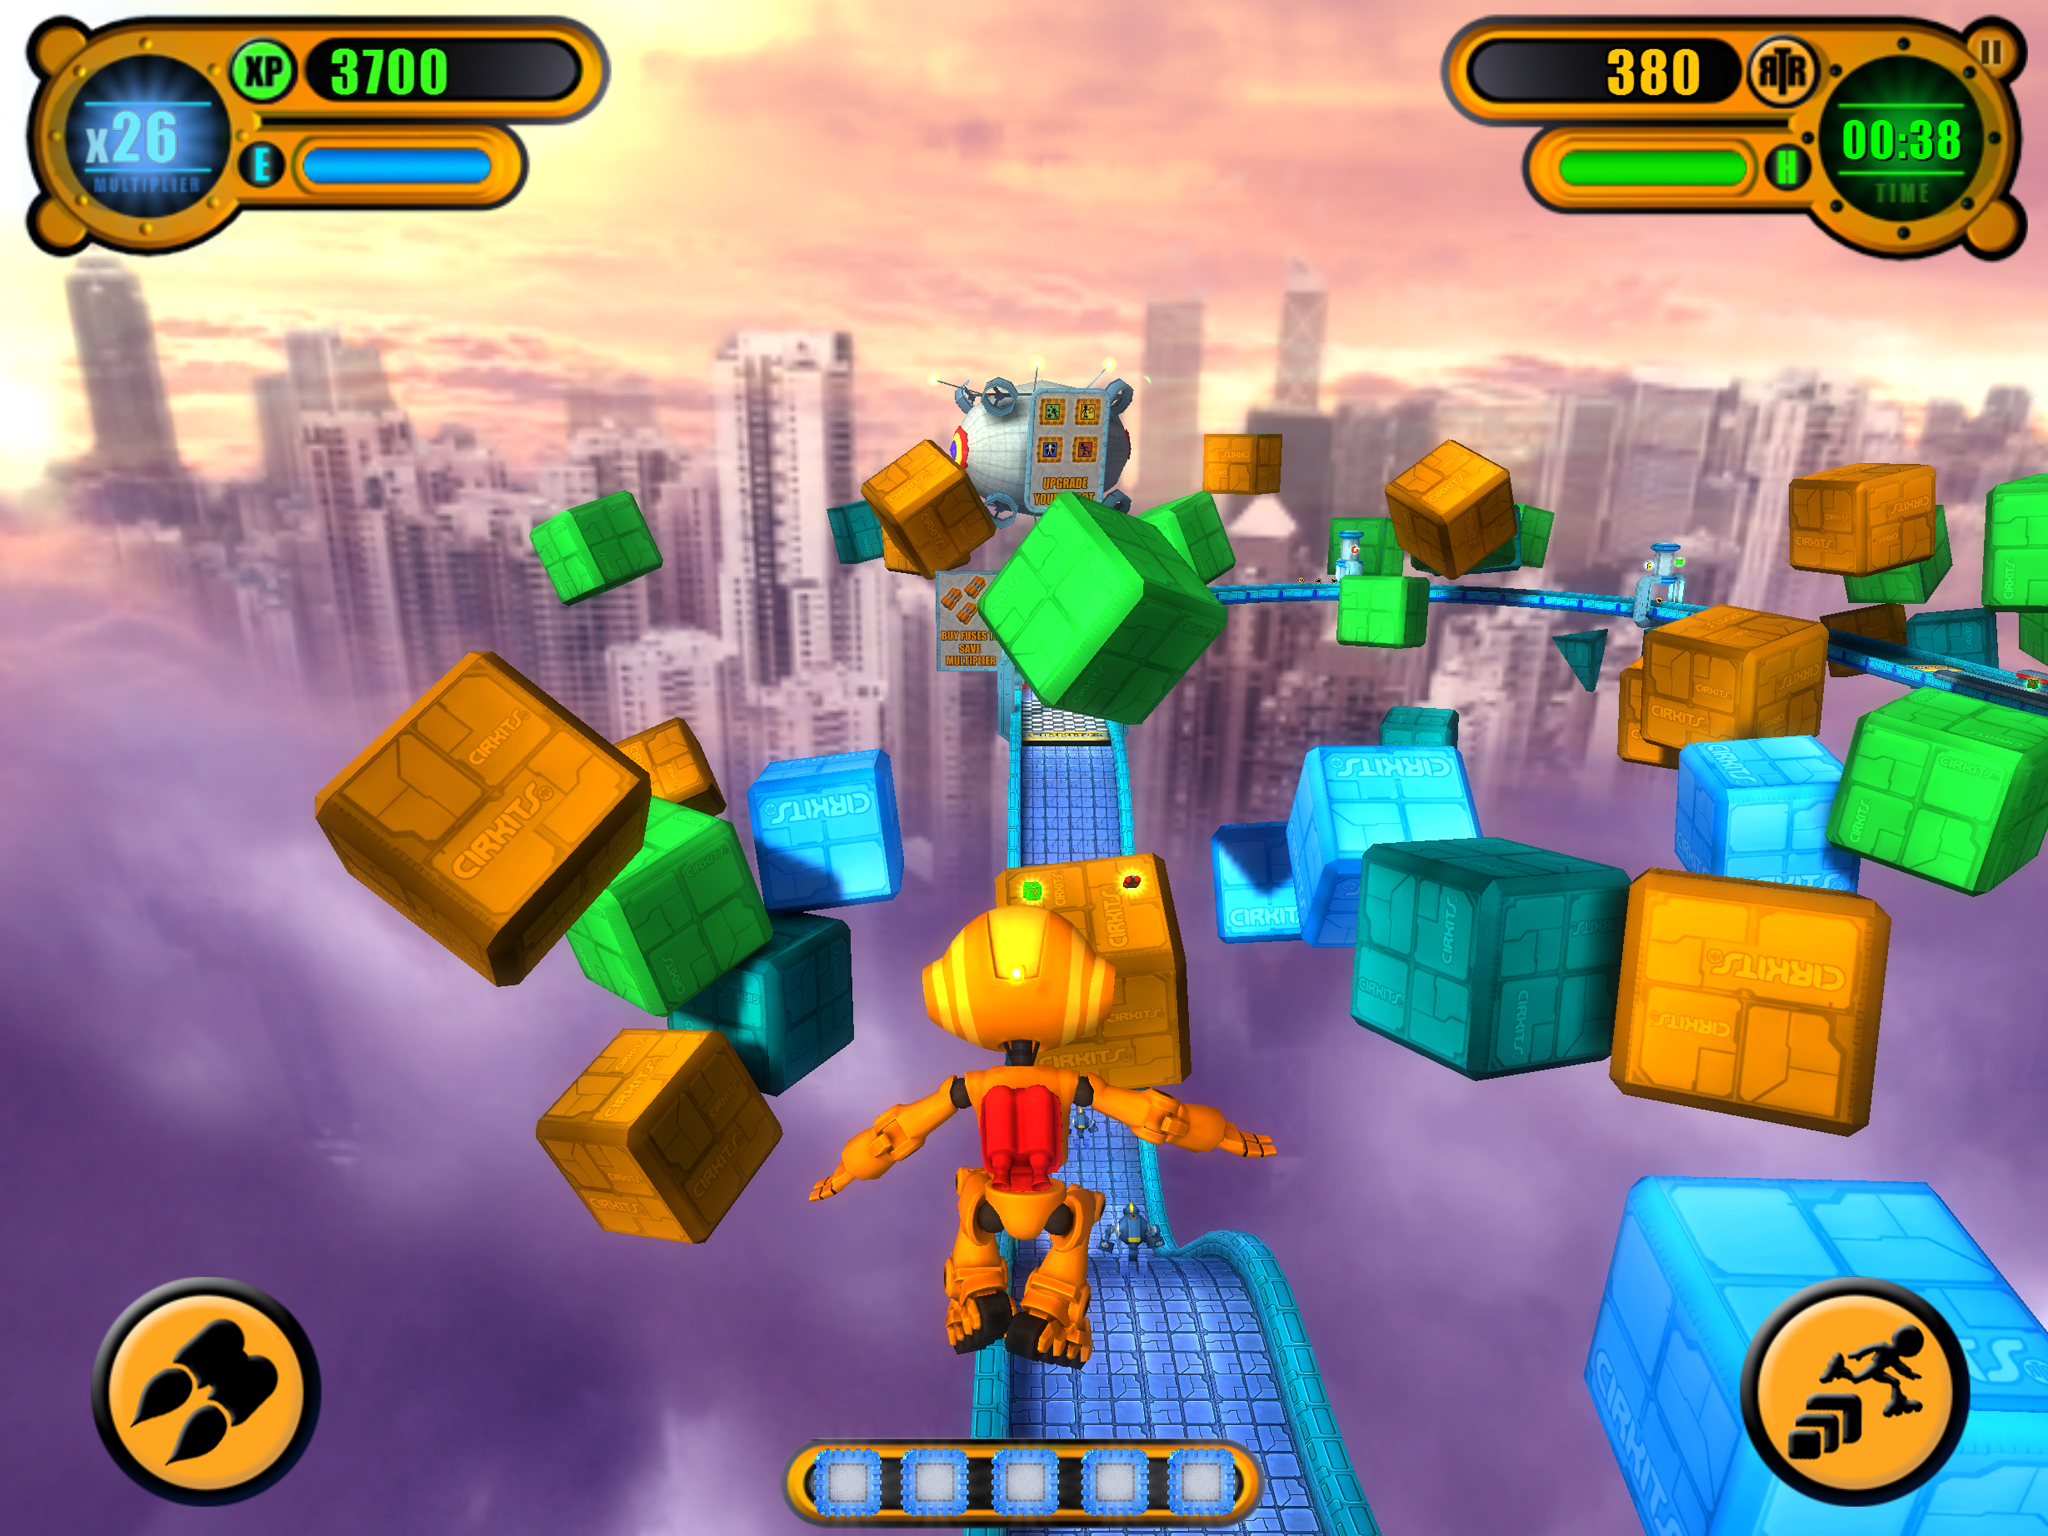 A screenshot of the game taken on iPad 3 using Gizmo Robot